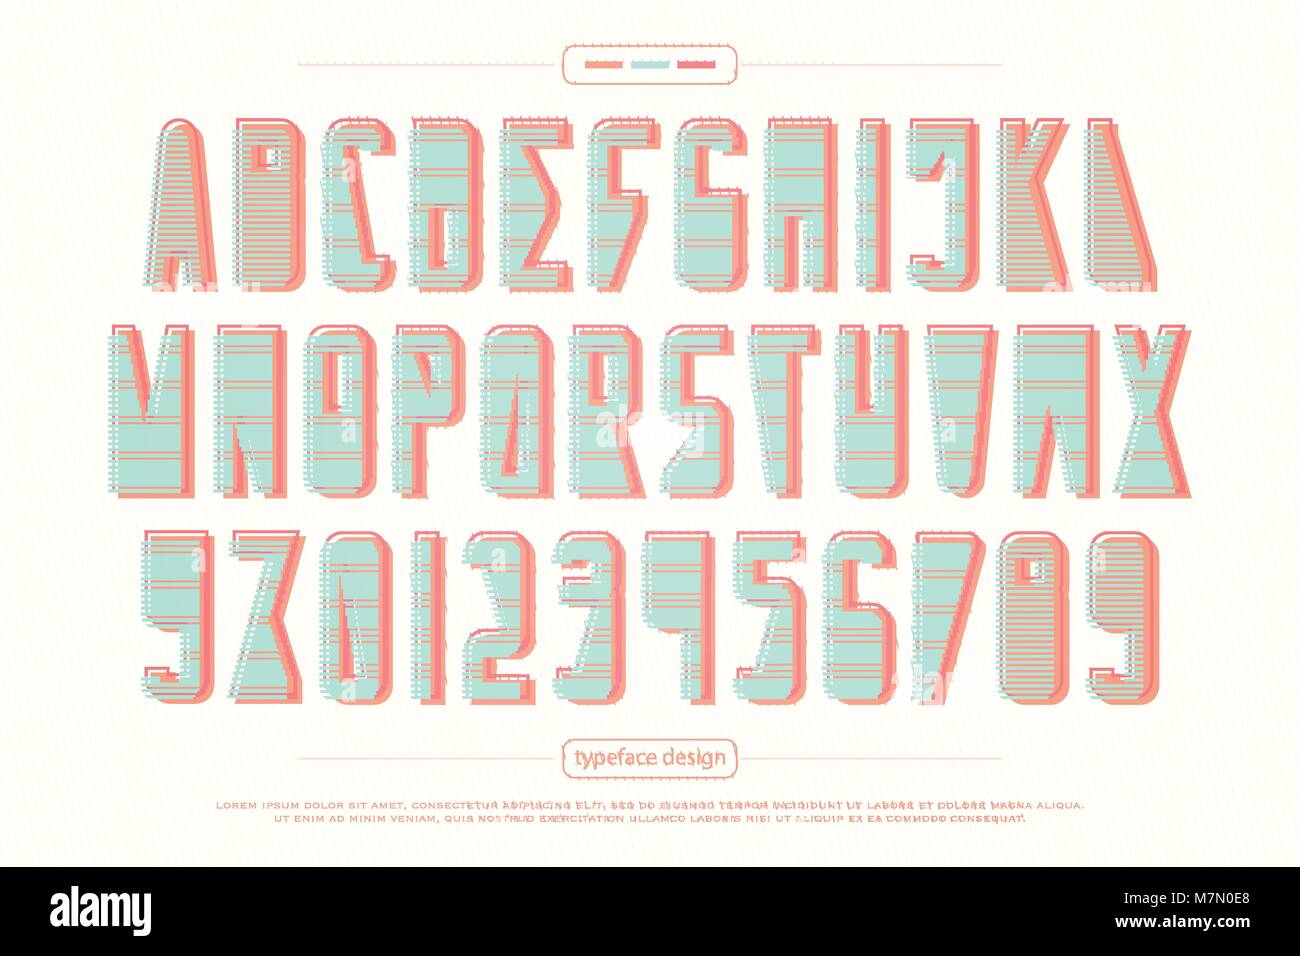 Stylish fonts and symbols image collections symbol and sign ideas urban style alphabet letters and numbers vector trendy font type urban style alphabet letters and numbers buycottarizona Gallery